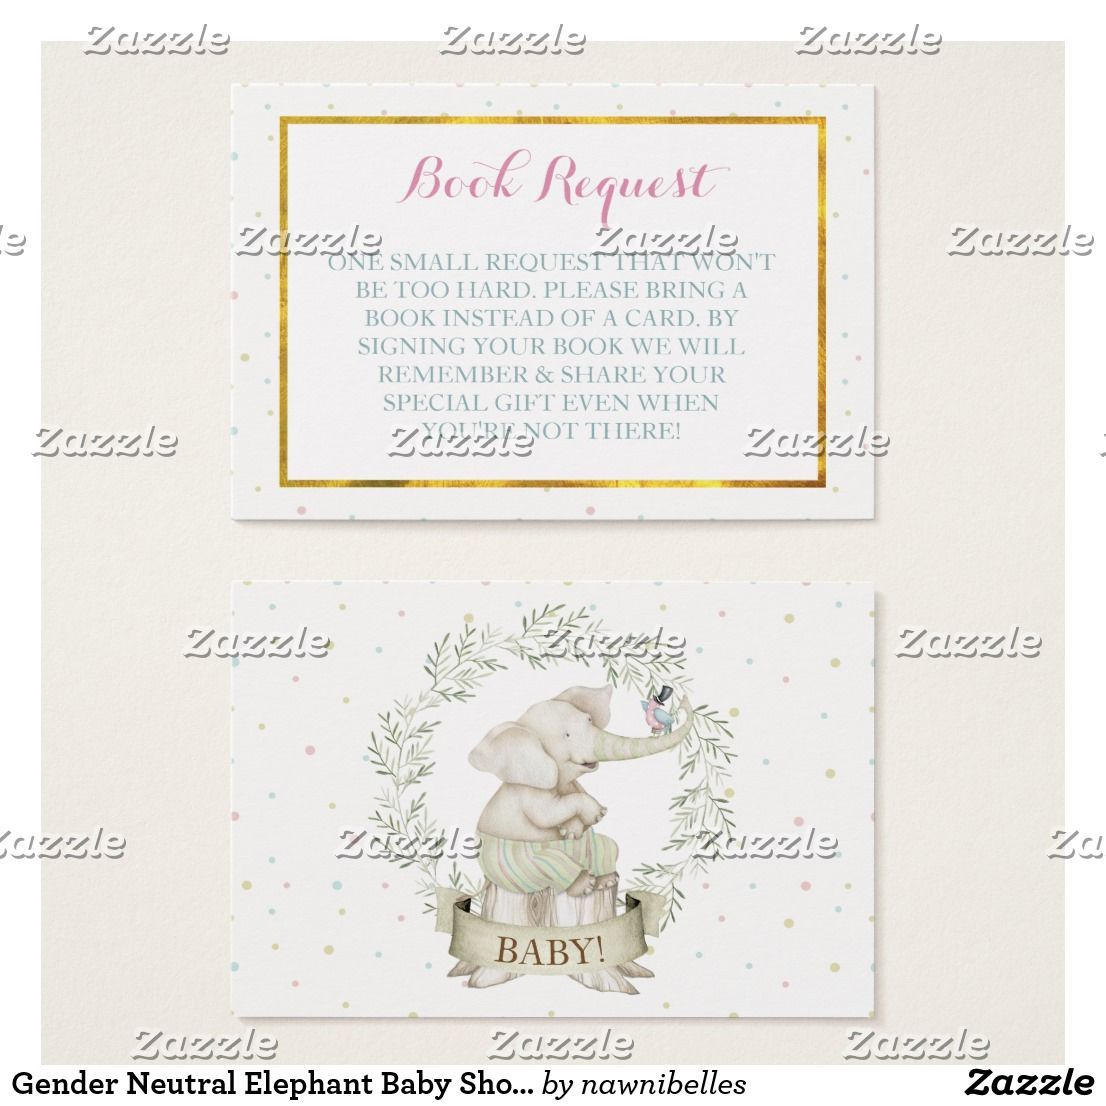 Gender neutral elephant baby shower book request business card gender neutral elephant baby shower book request business card elephant sitting on a tree trunk with reheart Gallery